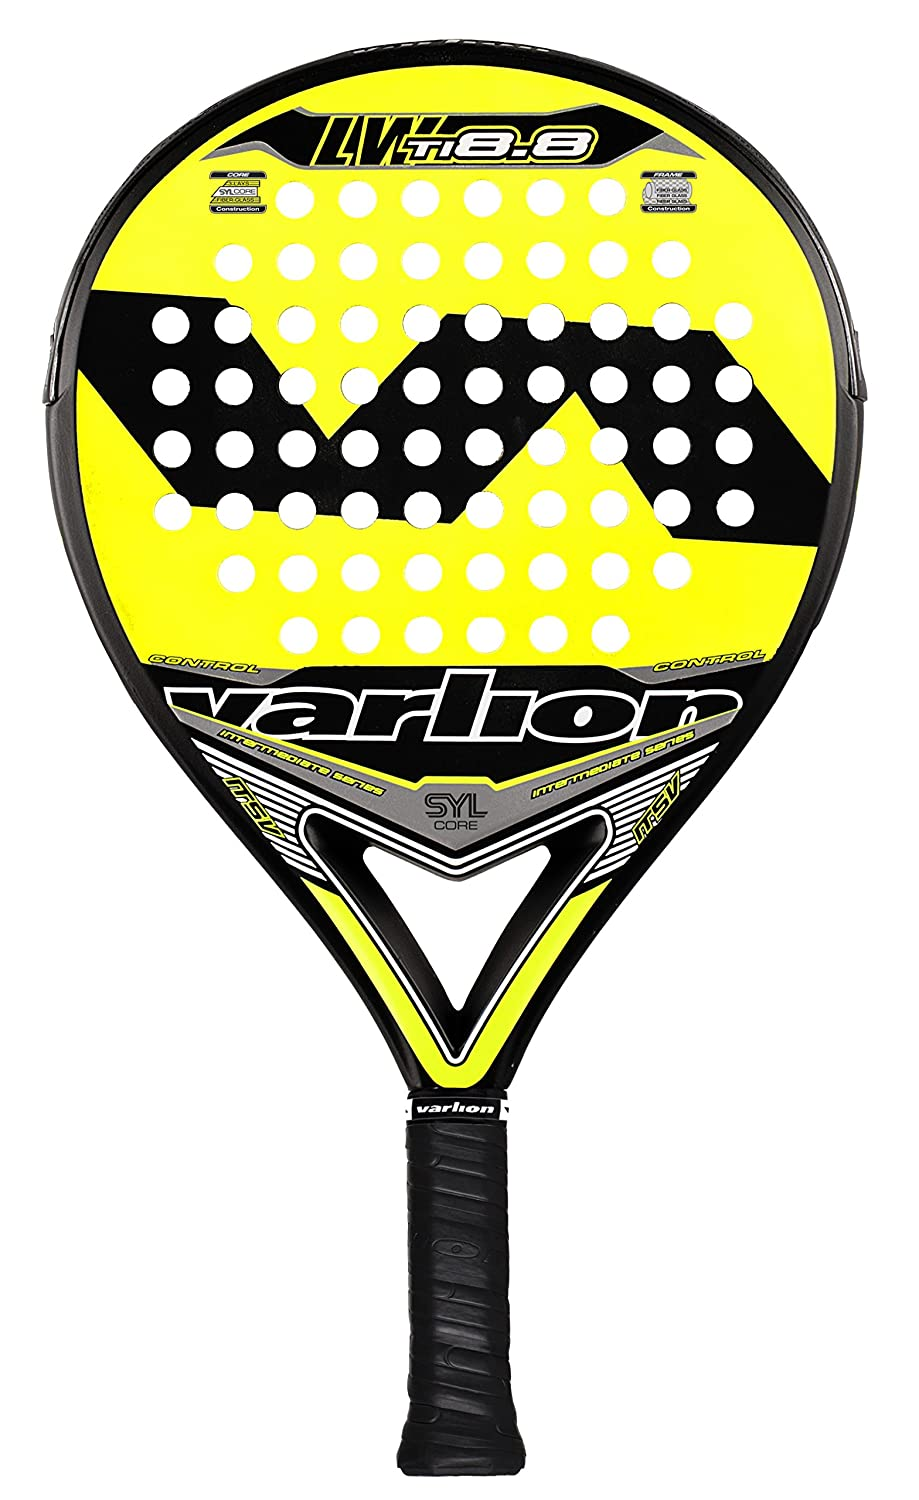 Varlion L.W. TI 8.8 SYL - Pala de pádel, 38mm, color amarillo: Amazon.es: Deportes y aire libre